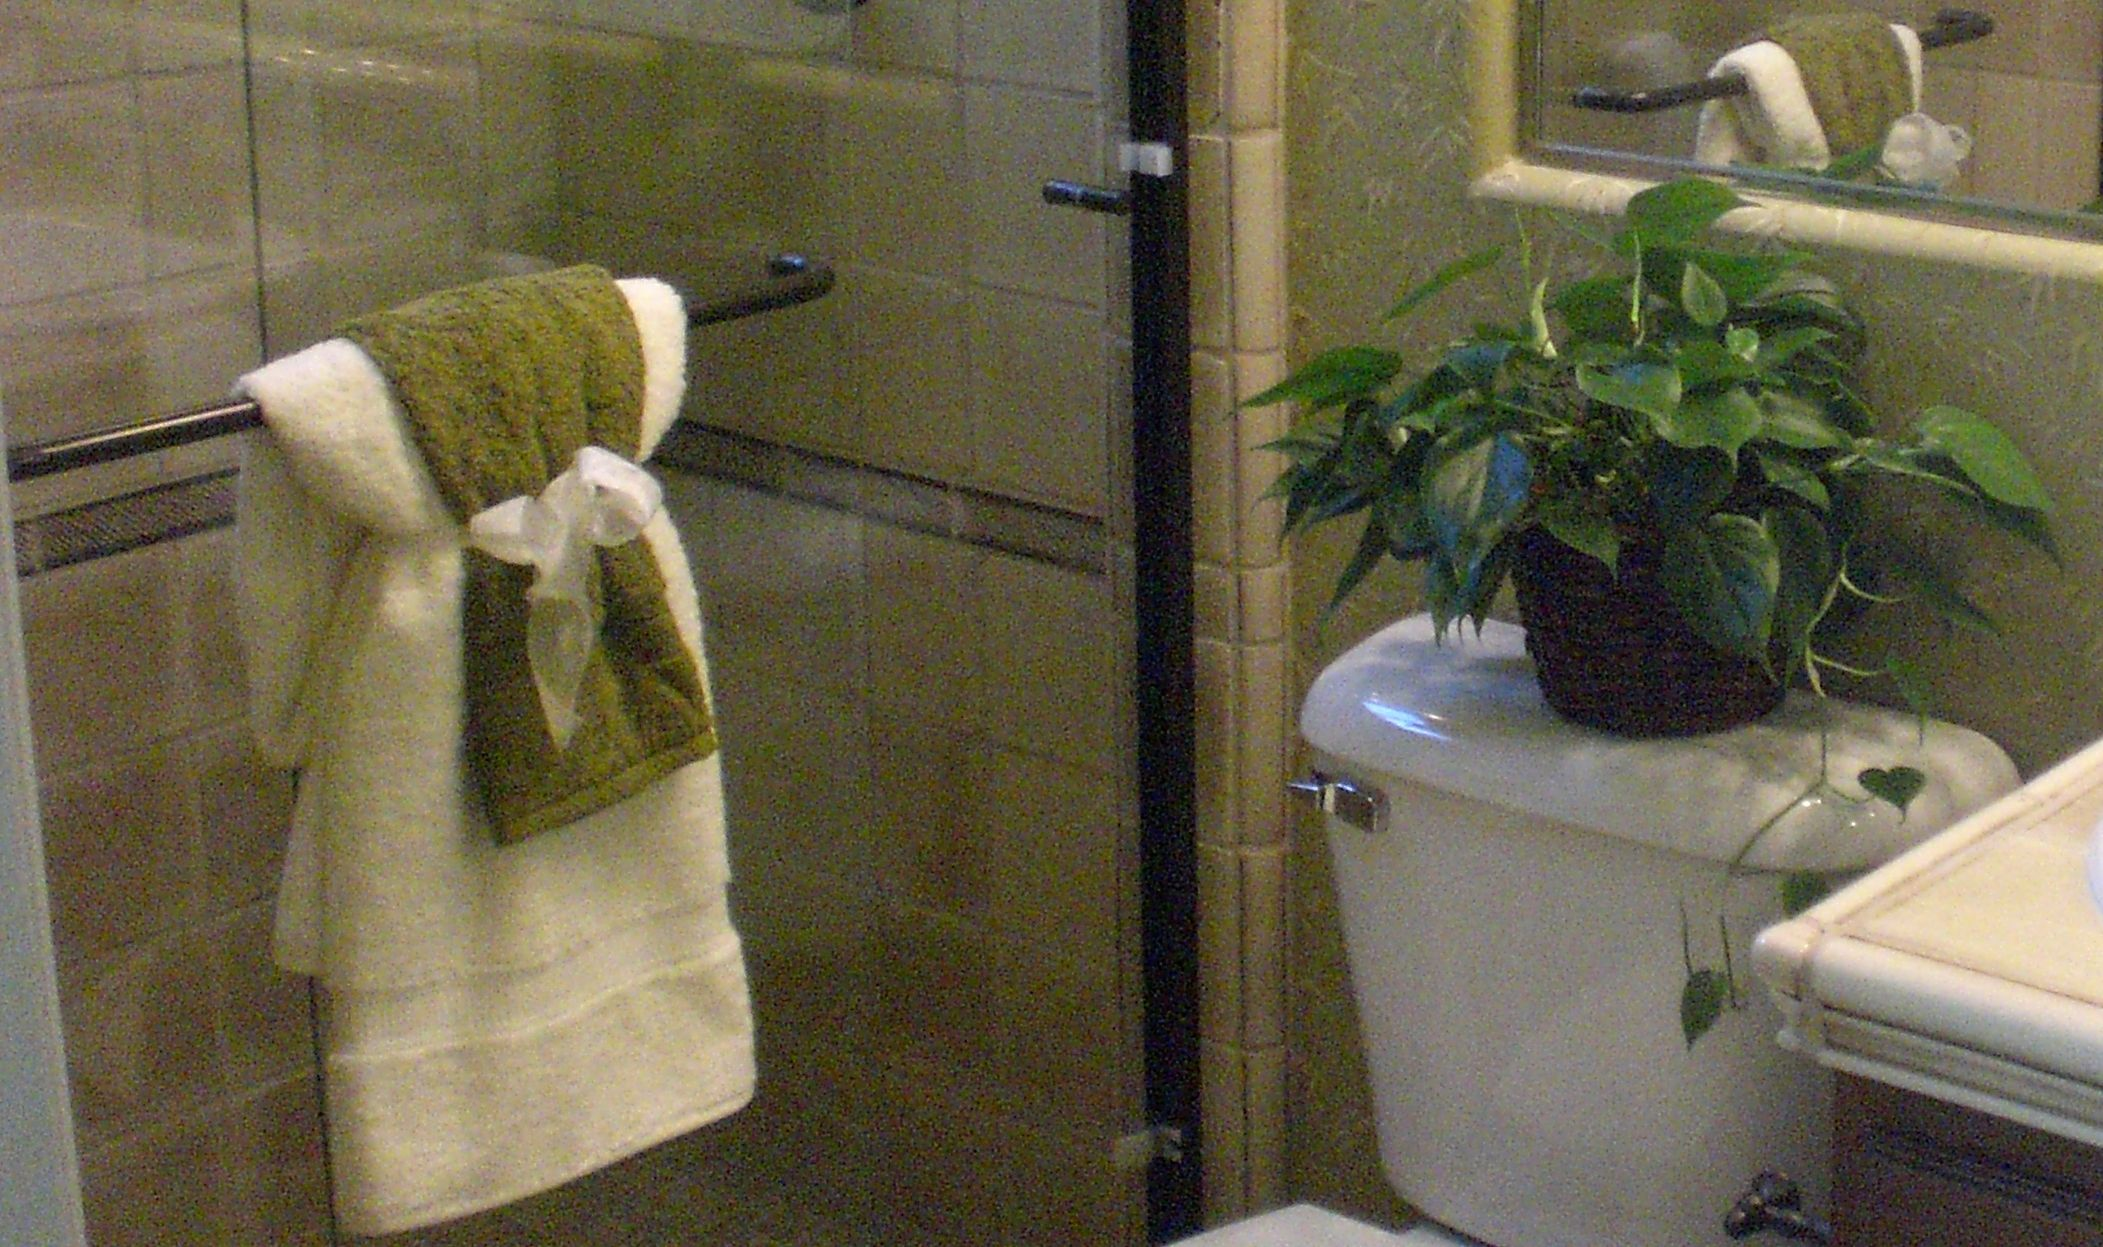 Towel Decorations Everyday Items Towels And Bathroom - Decorative towels for bathroom ideas for small bathroom ideas